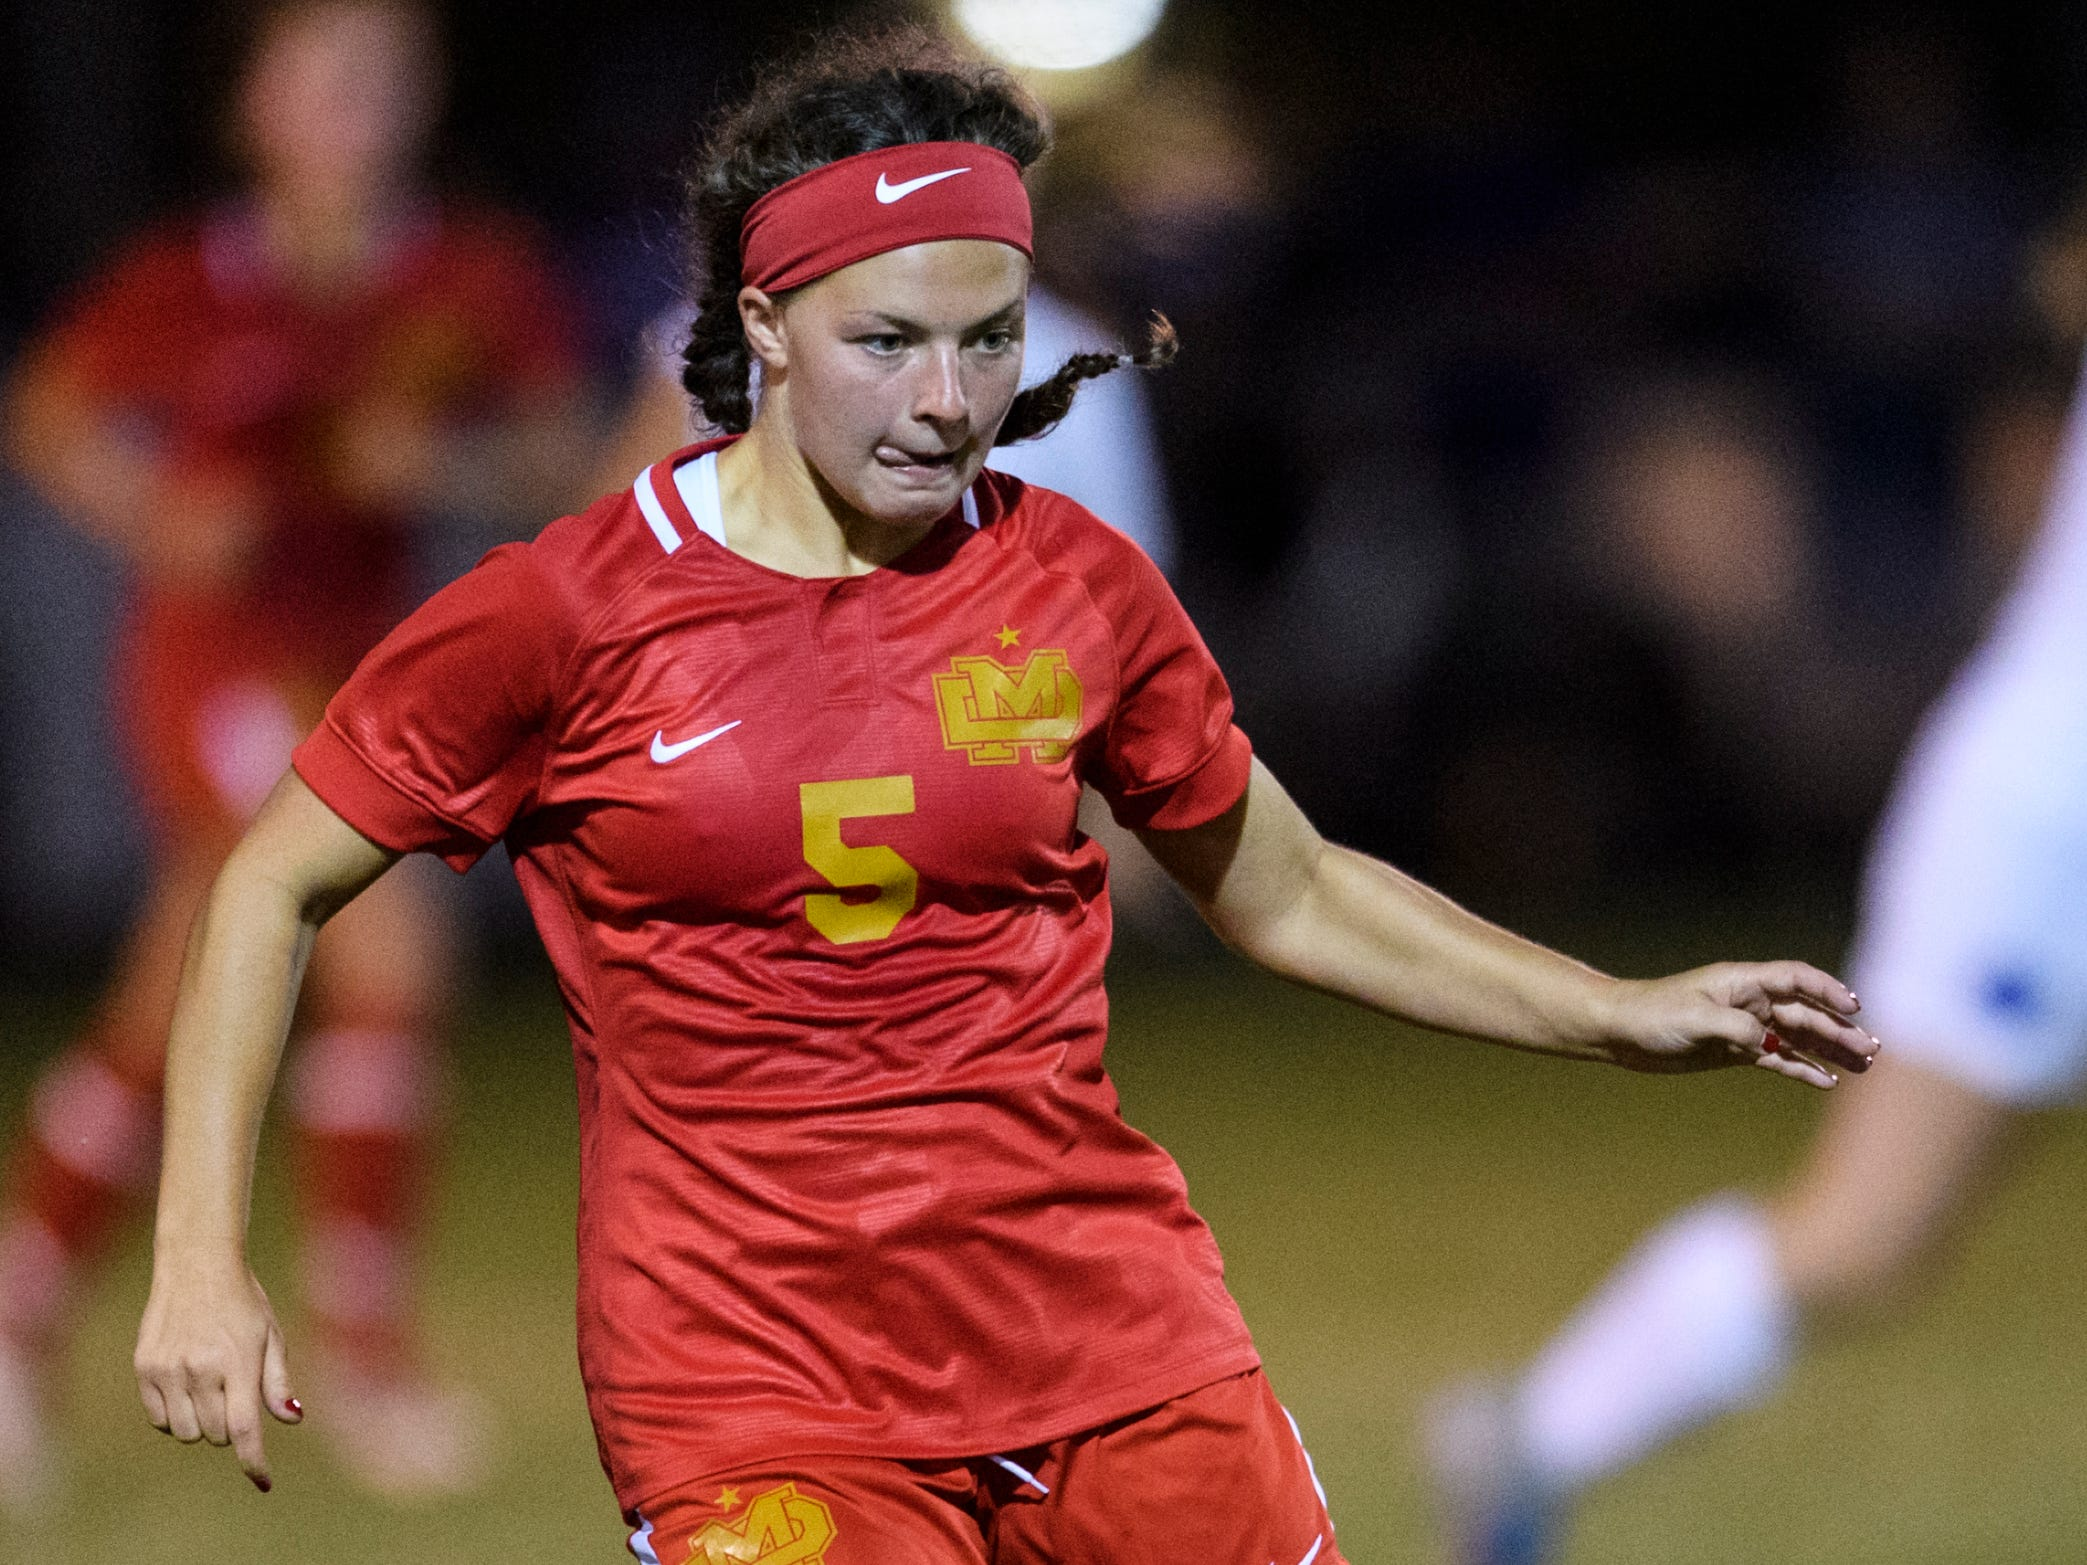 Mater Dei's Jessica Marquis (5) advances down the field during the second half against the Memorial Tigers at the EVSC Soccer Fields in Evansville, Ind., Monday, Aug. 20, 2018. The Tigers defeated the Wildcats 4-0.